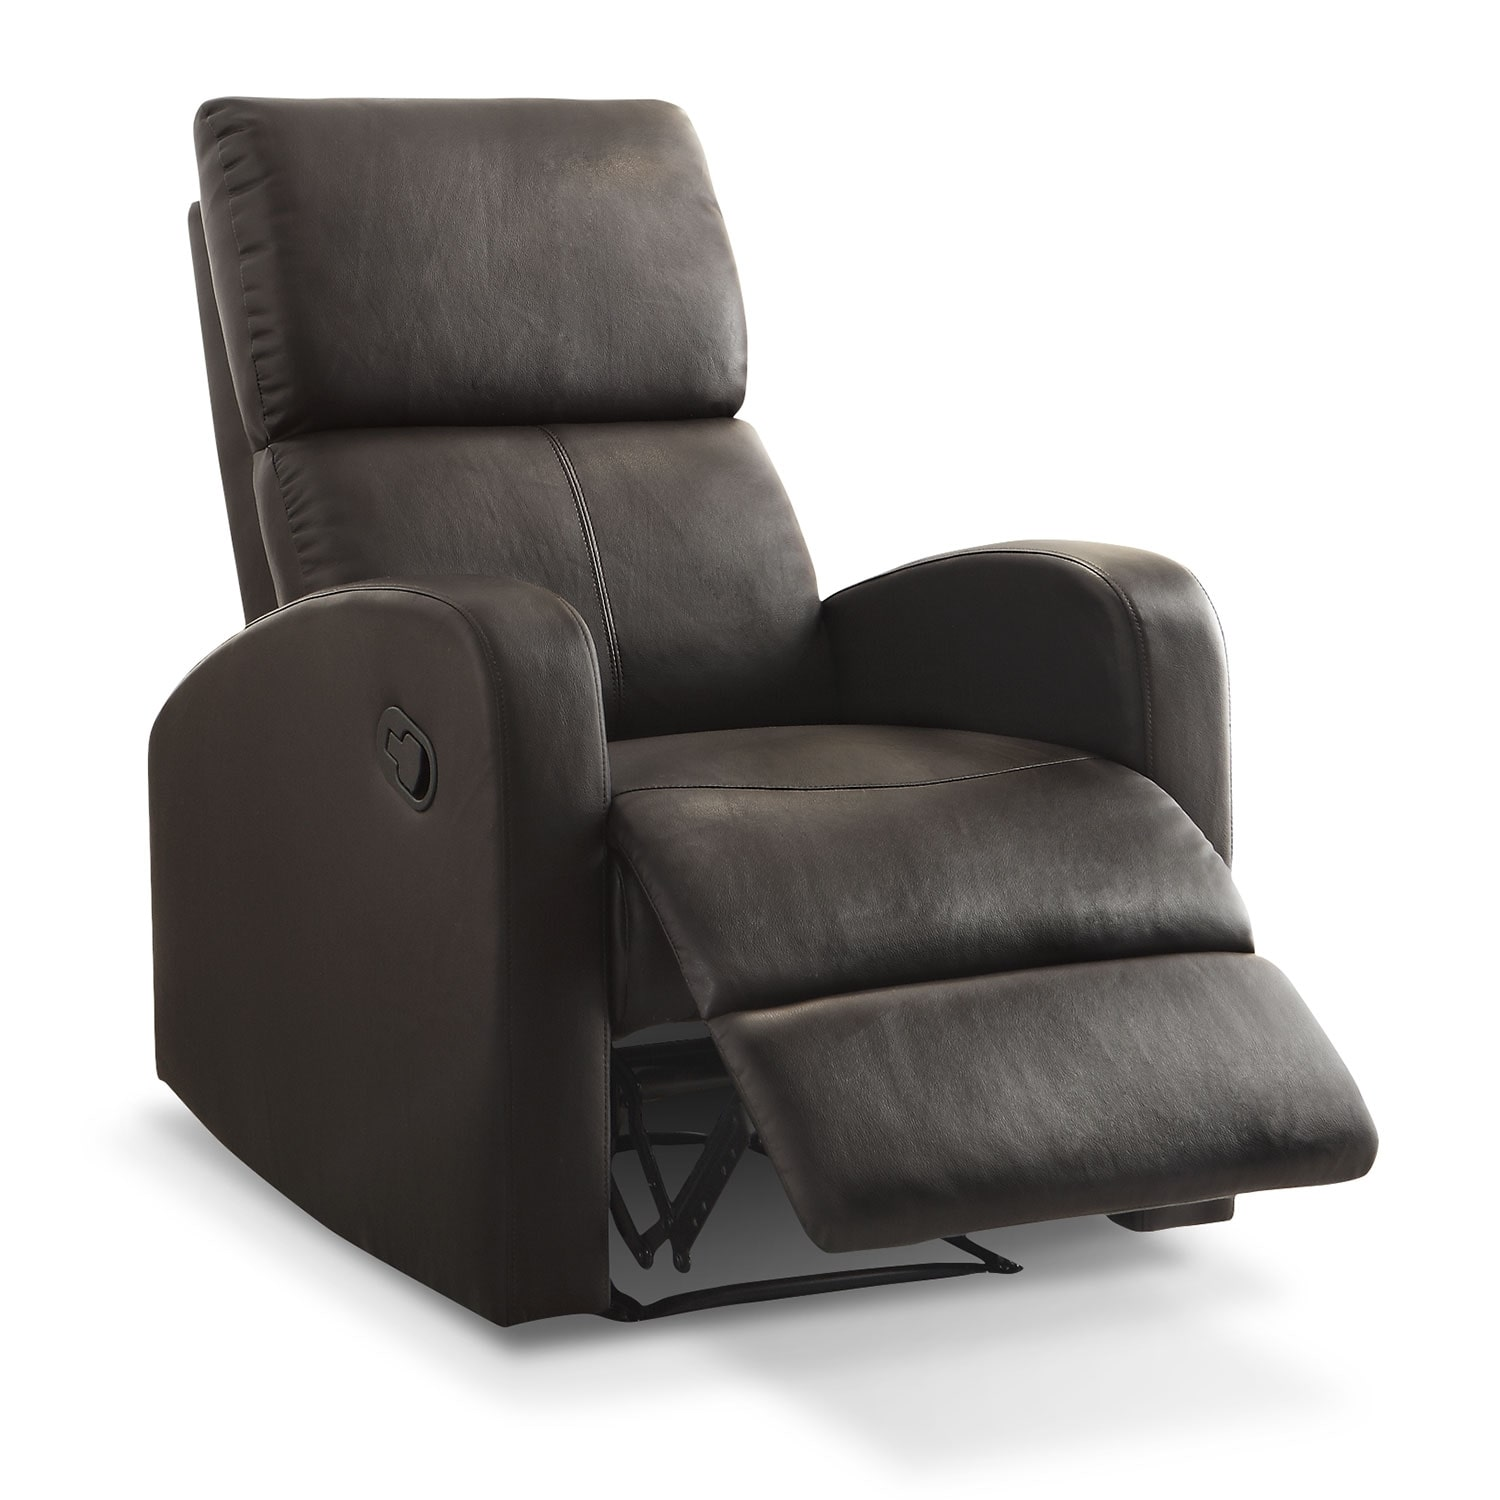 Benning recliner dark brown leon 39 s for Chair chair chair